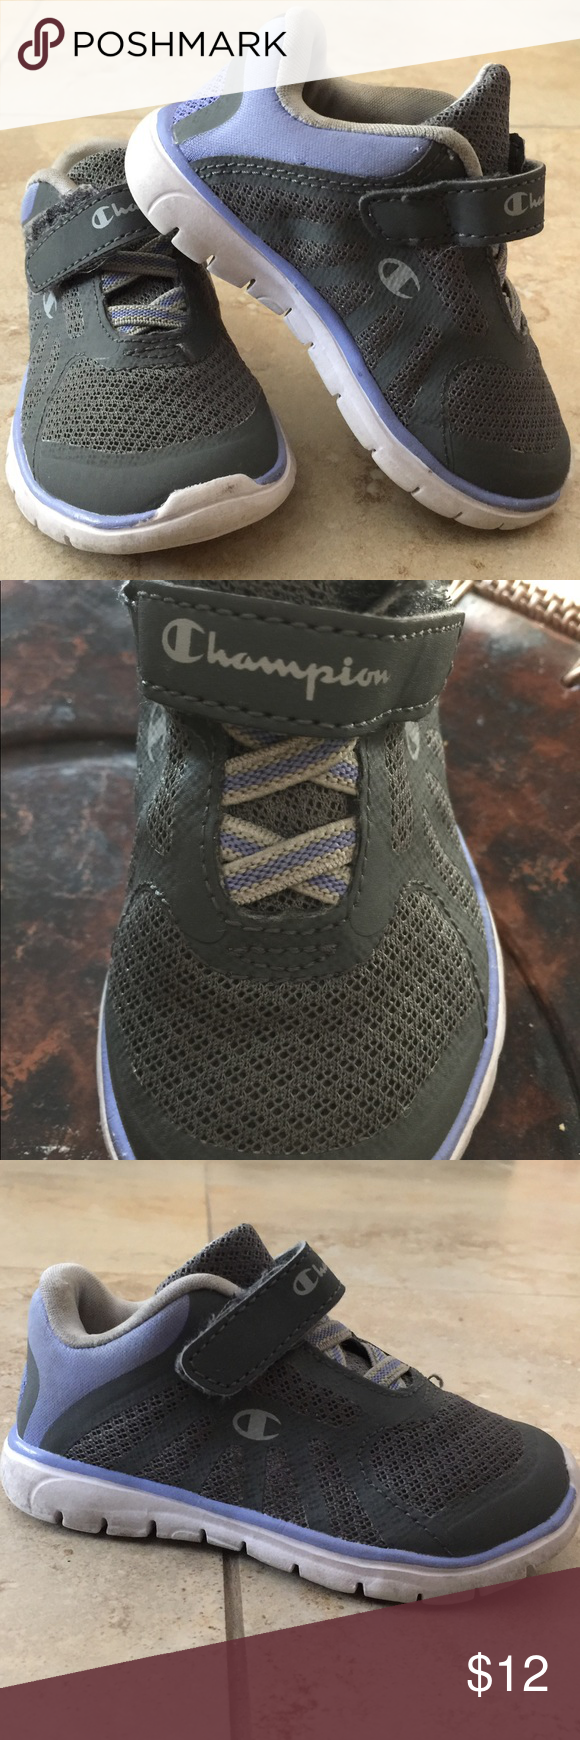 f63c6aa20d3c7 Champion Baby shoe size 6 Used but perfect condition great and blue color. Champion  Shoes Sneakers